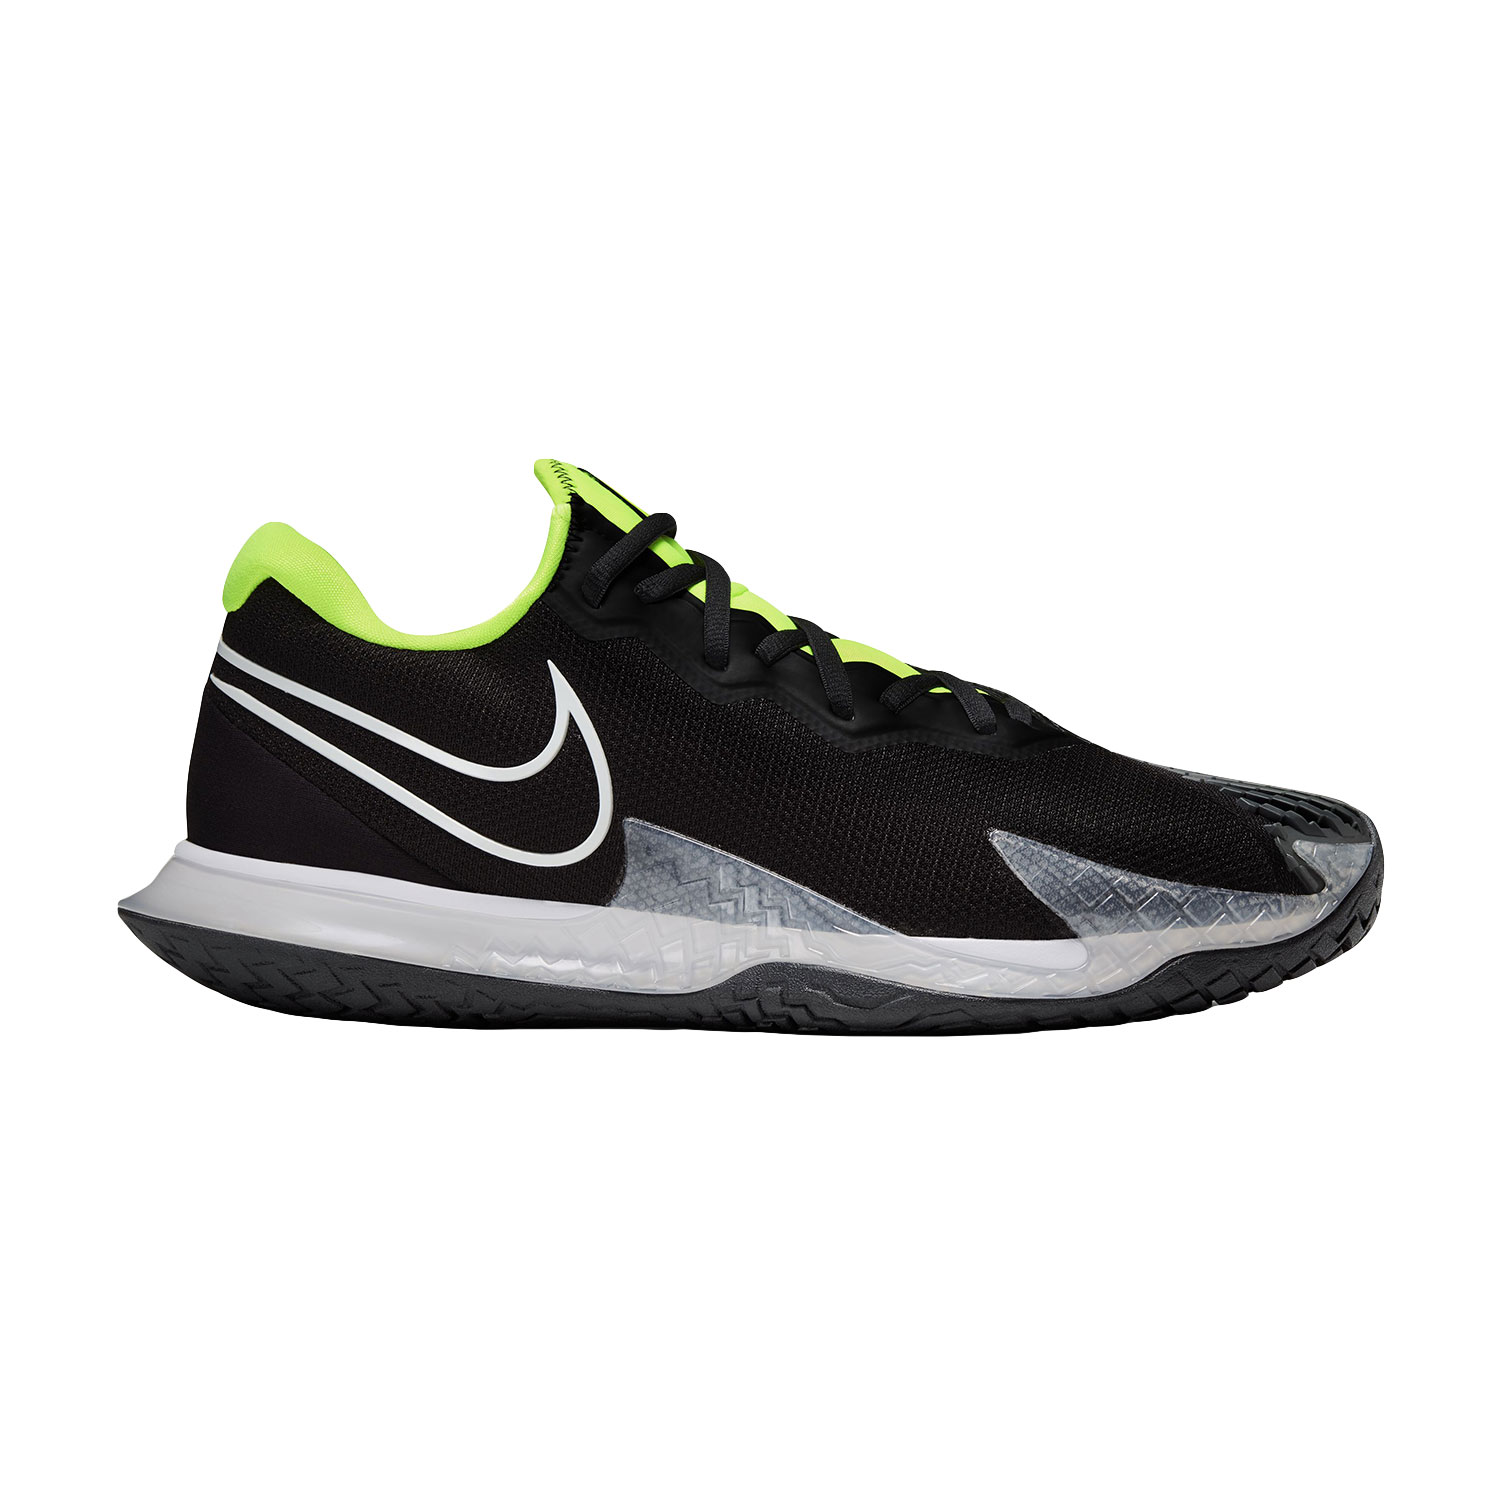 Nike Air Zoom Vapor Cage 4 HC - Black/White/Volt/Dark Smoke Grey